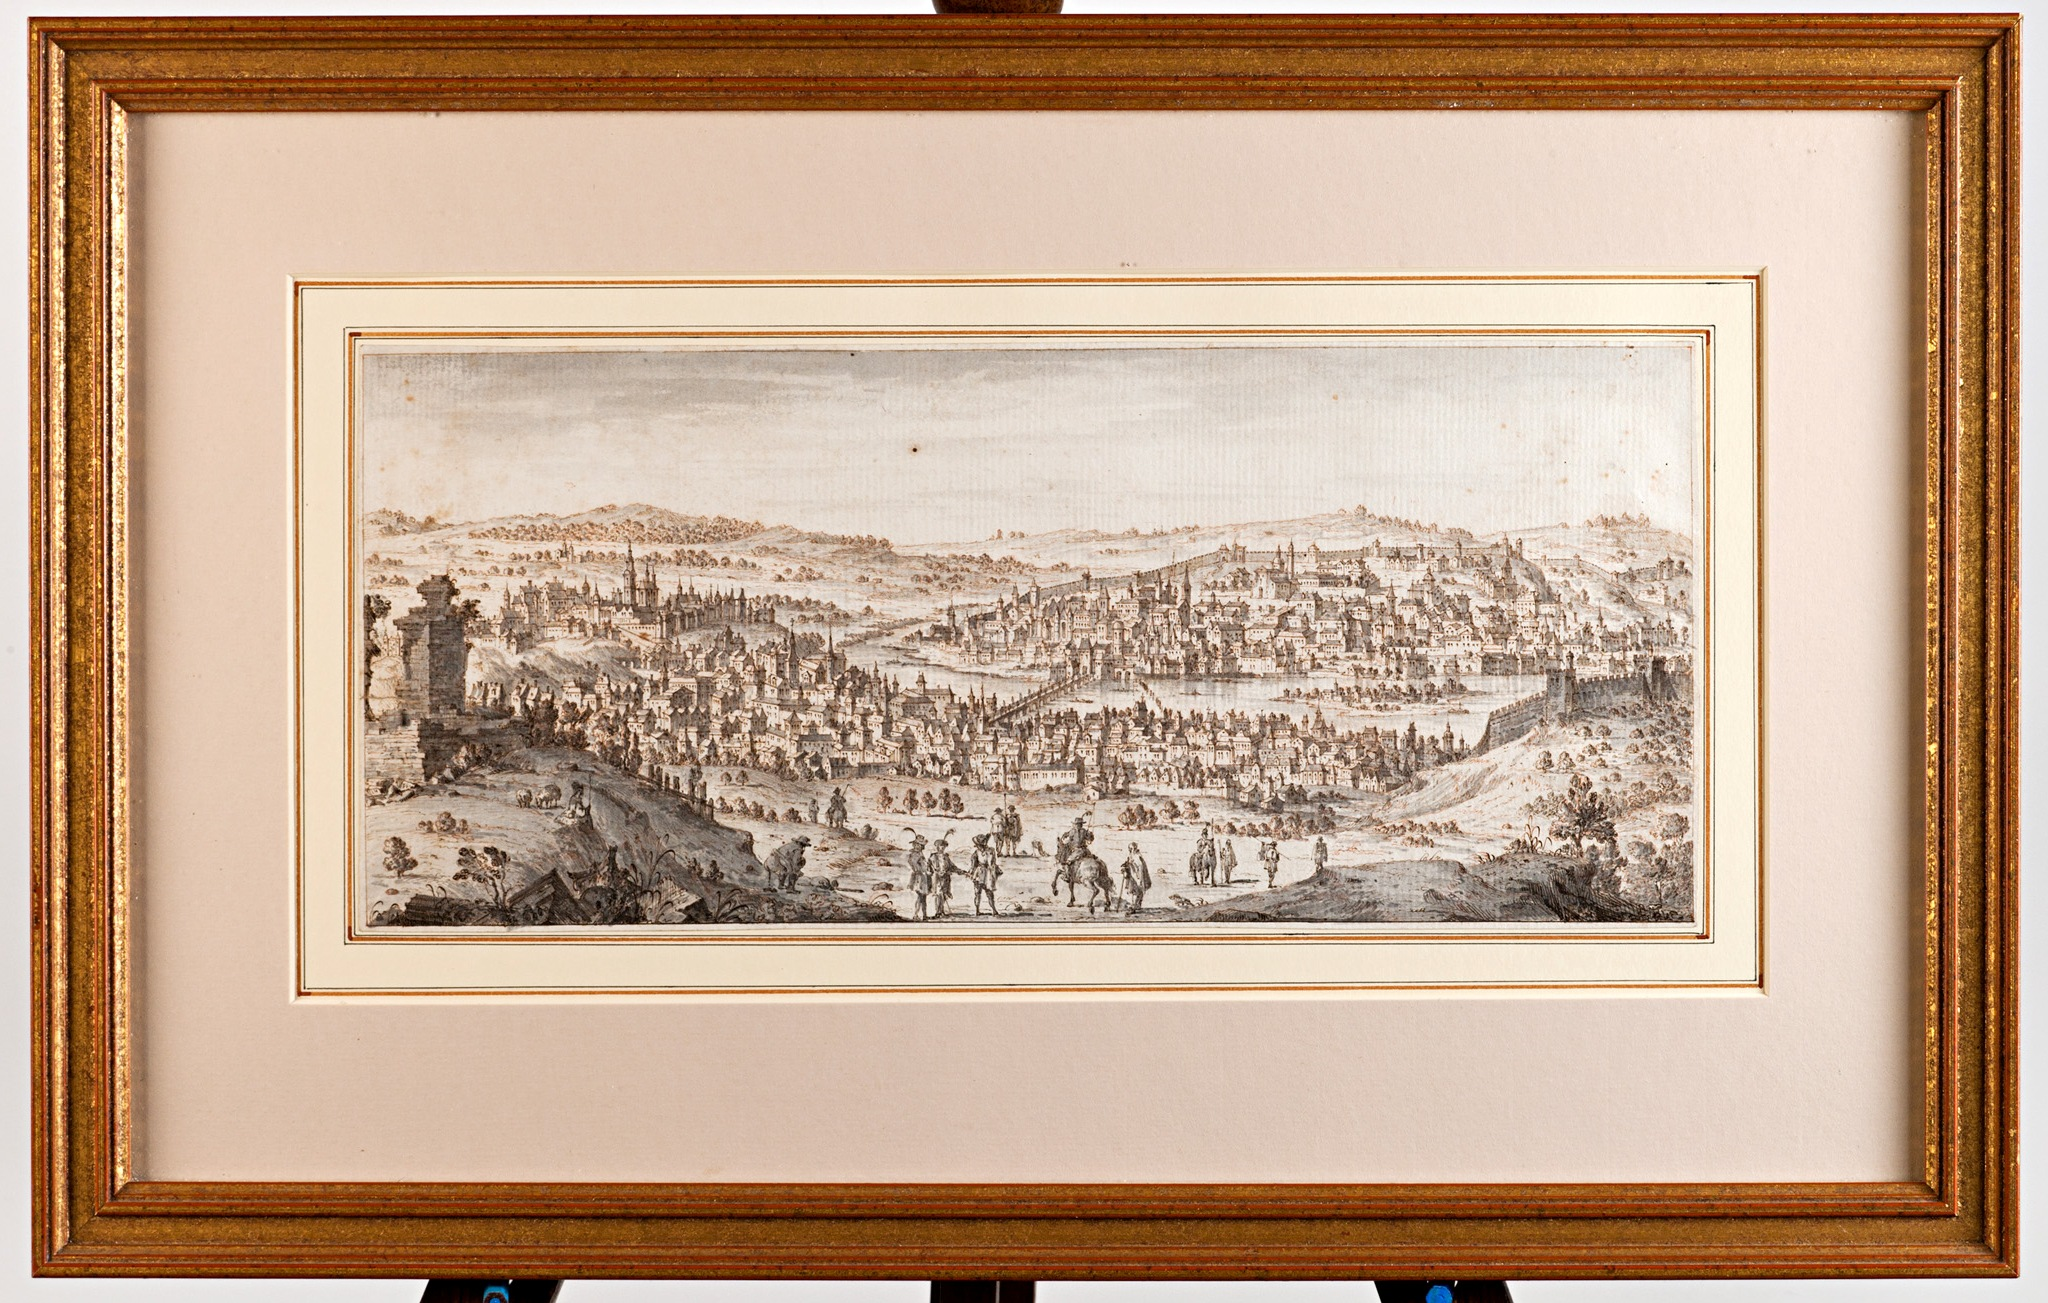 A View of the City of Prague, Attributed to Giovanni Battista Albrizzi (1698-1779).